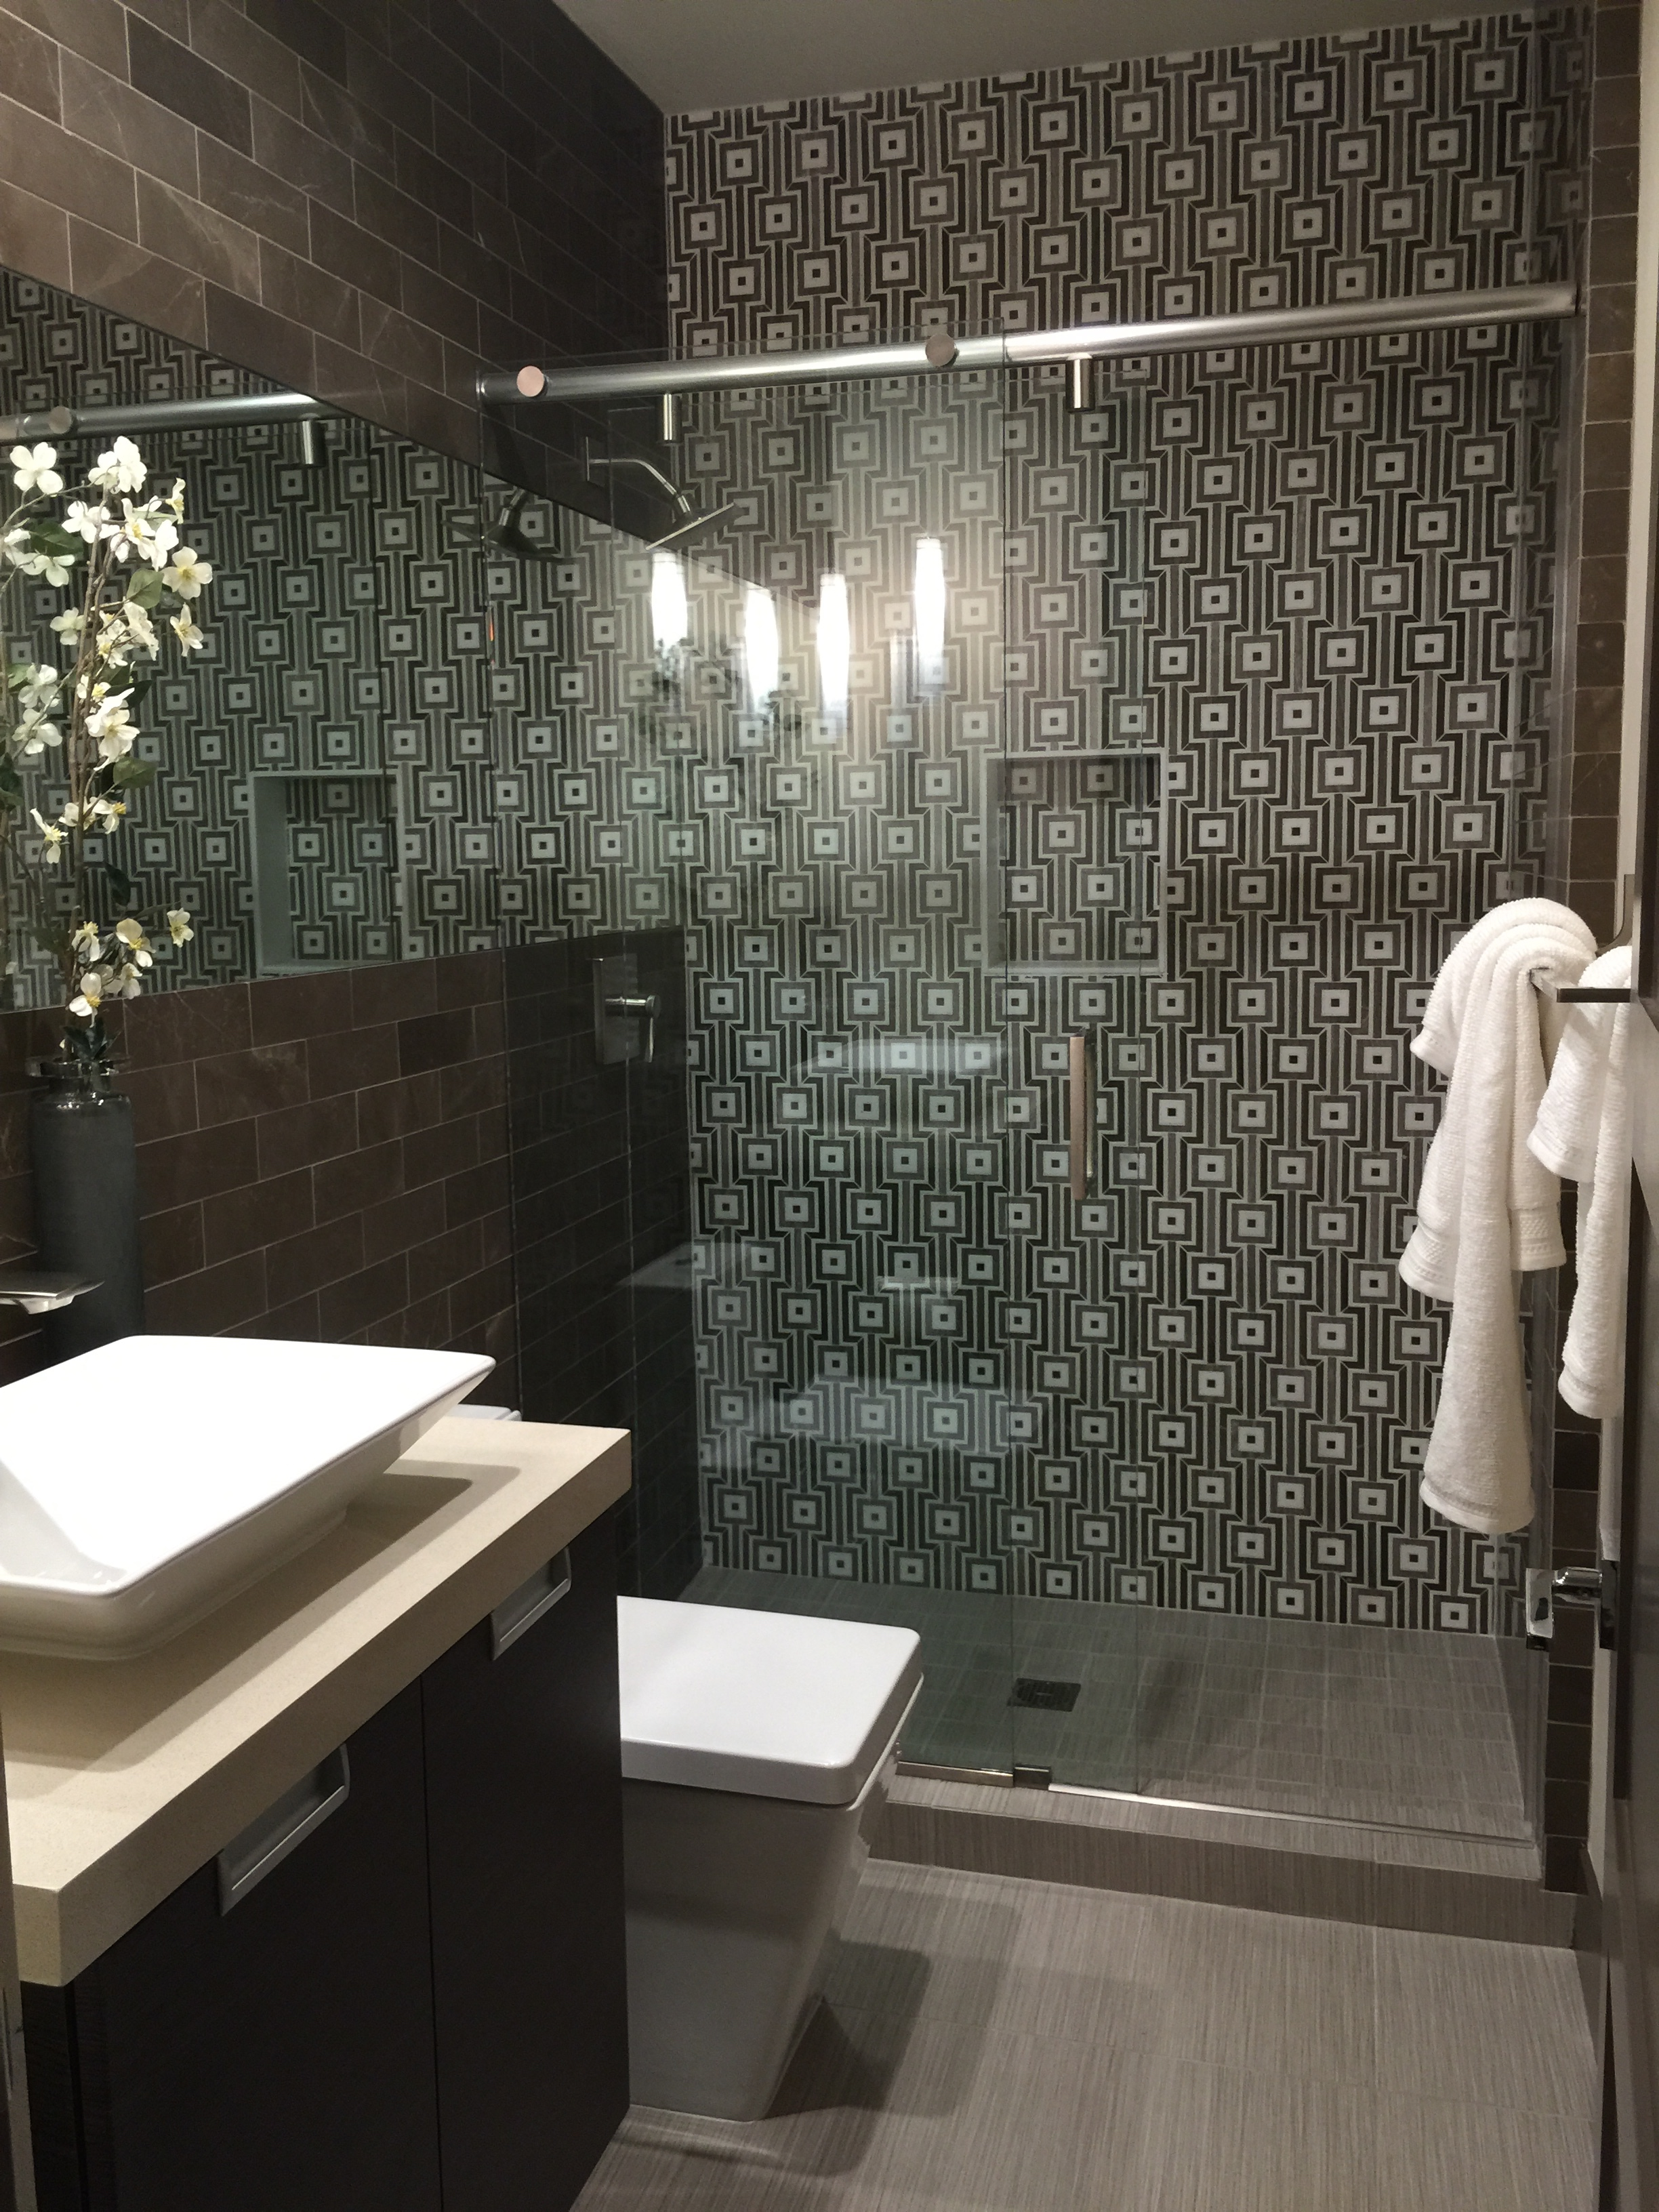 amazing tile wall by Walker Zanger plus frameless shower door and sink plus faucet for bathroom decor ideas